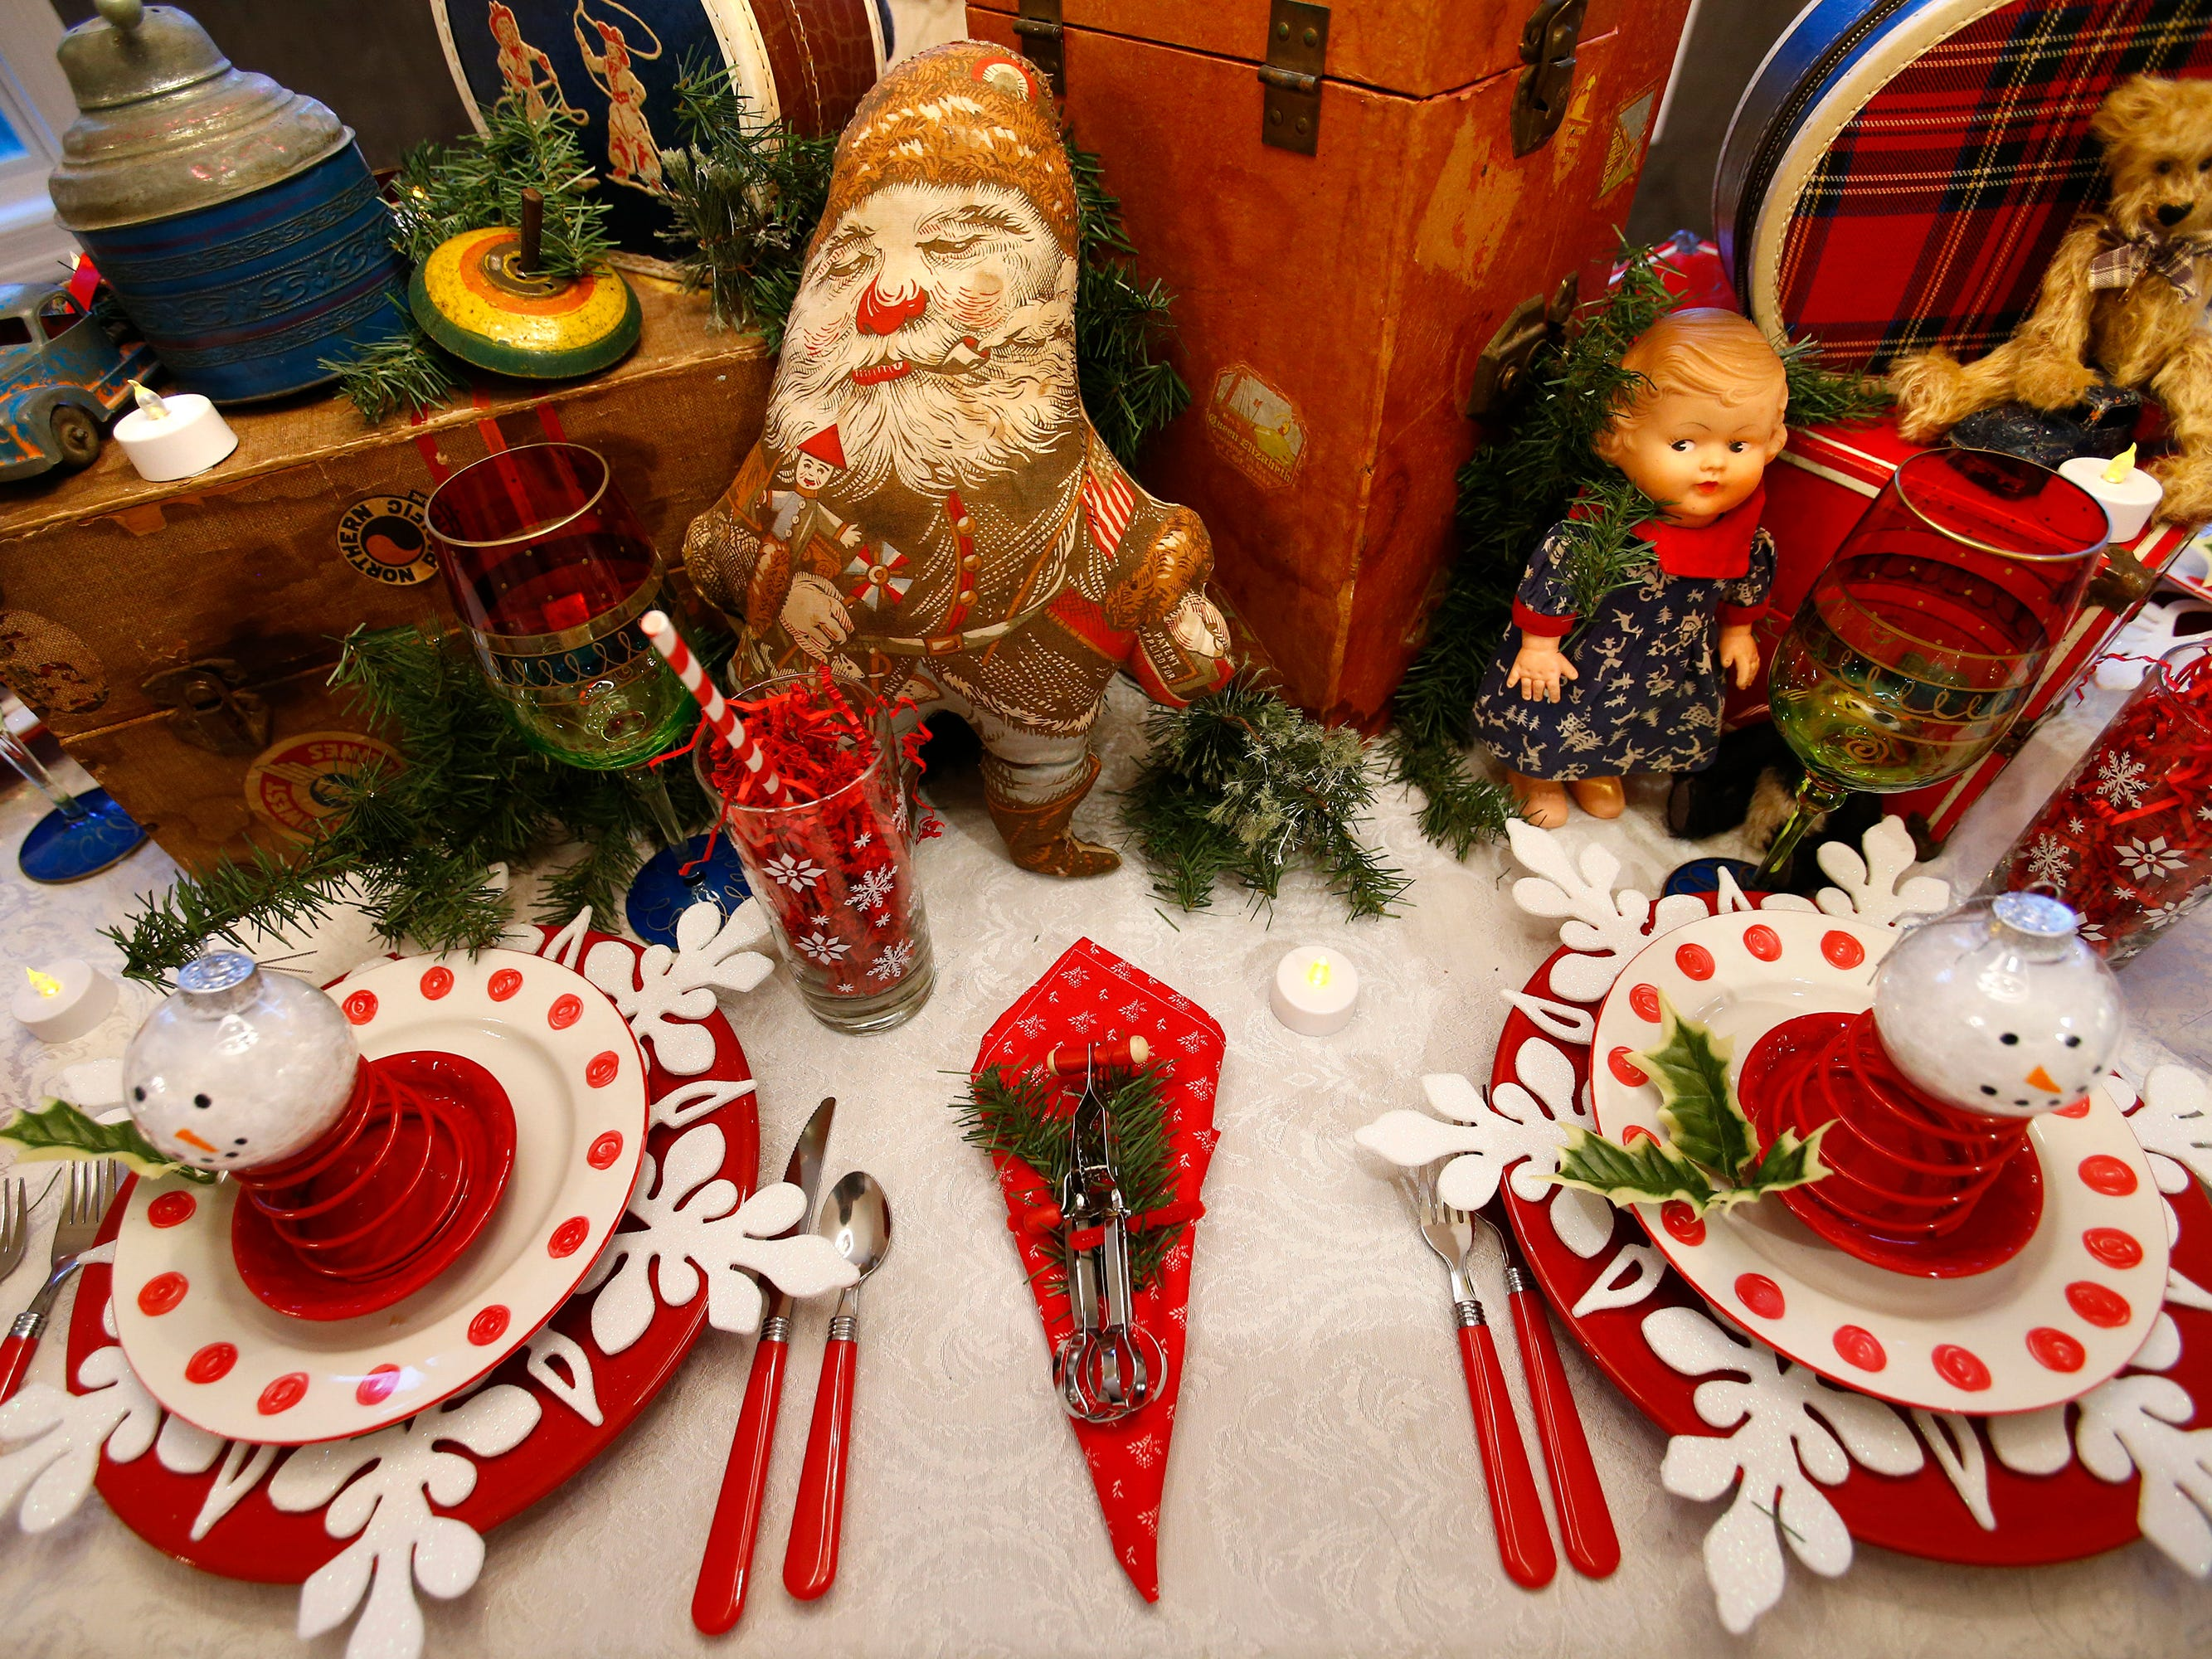 A table set for the 26th annual Christmas Fantasy House with 18 rooms decorated by more than 16 area decorators to benefit the Ronald McDonald House Charities Eastern Wisconsin. The Fantasy house will be open 10 a.m. to 8 p.m. on Nov. 9, and 10 a.m. to 6 p.m. on Nov. 10 and 11. Parking and shuttle to the House is at Ridgewood Baptist Church, 2720 Lilly Road, Brookfield. Tickets are $20 at the door.